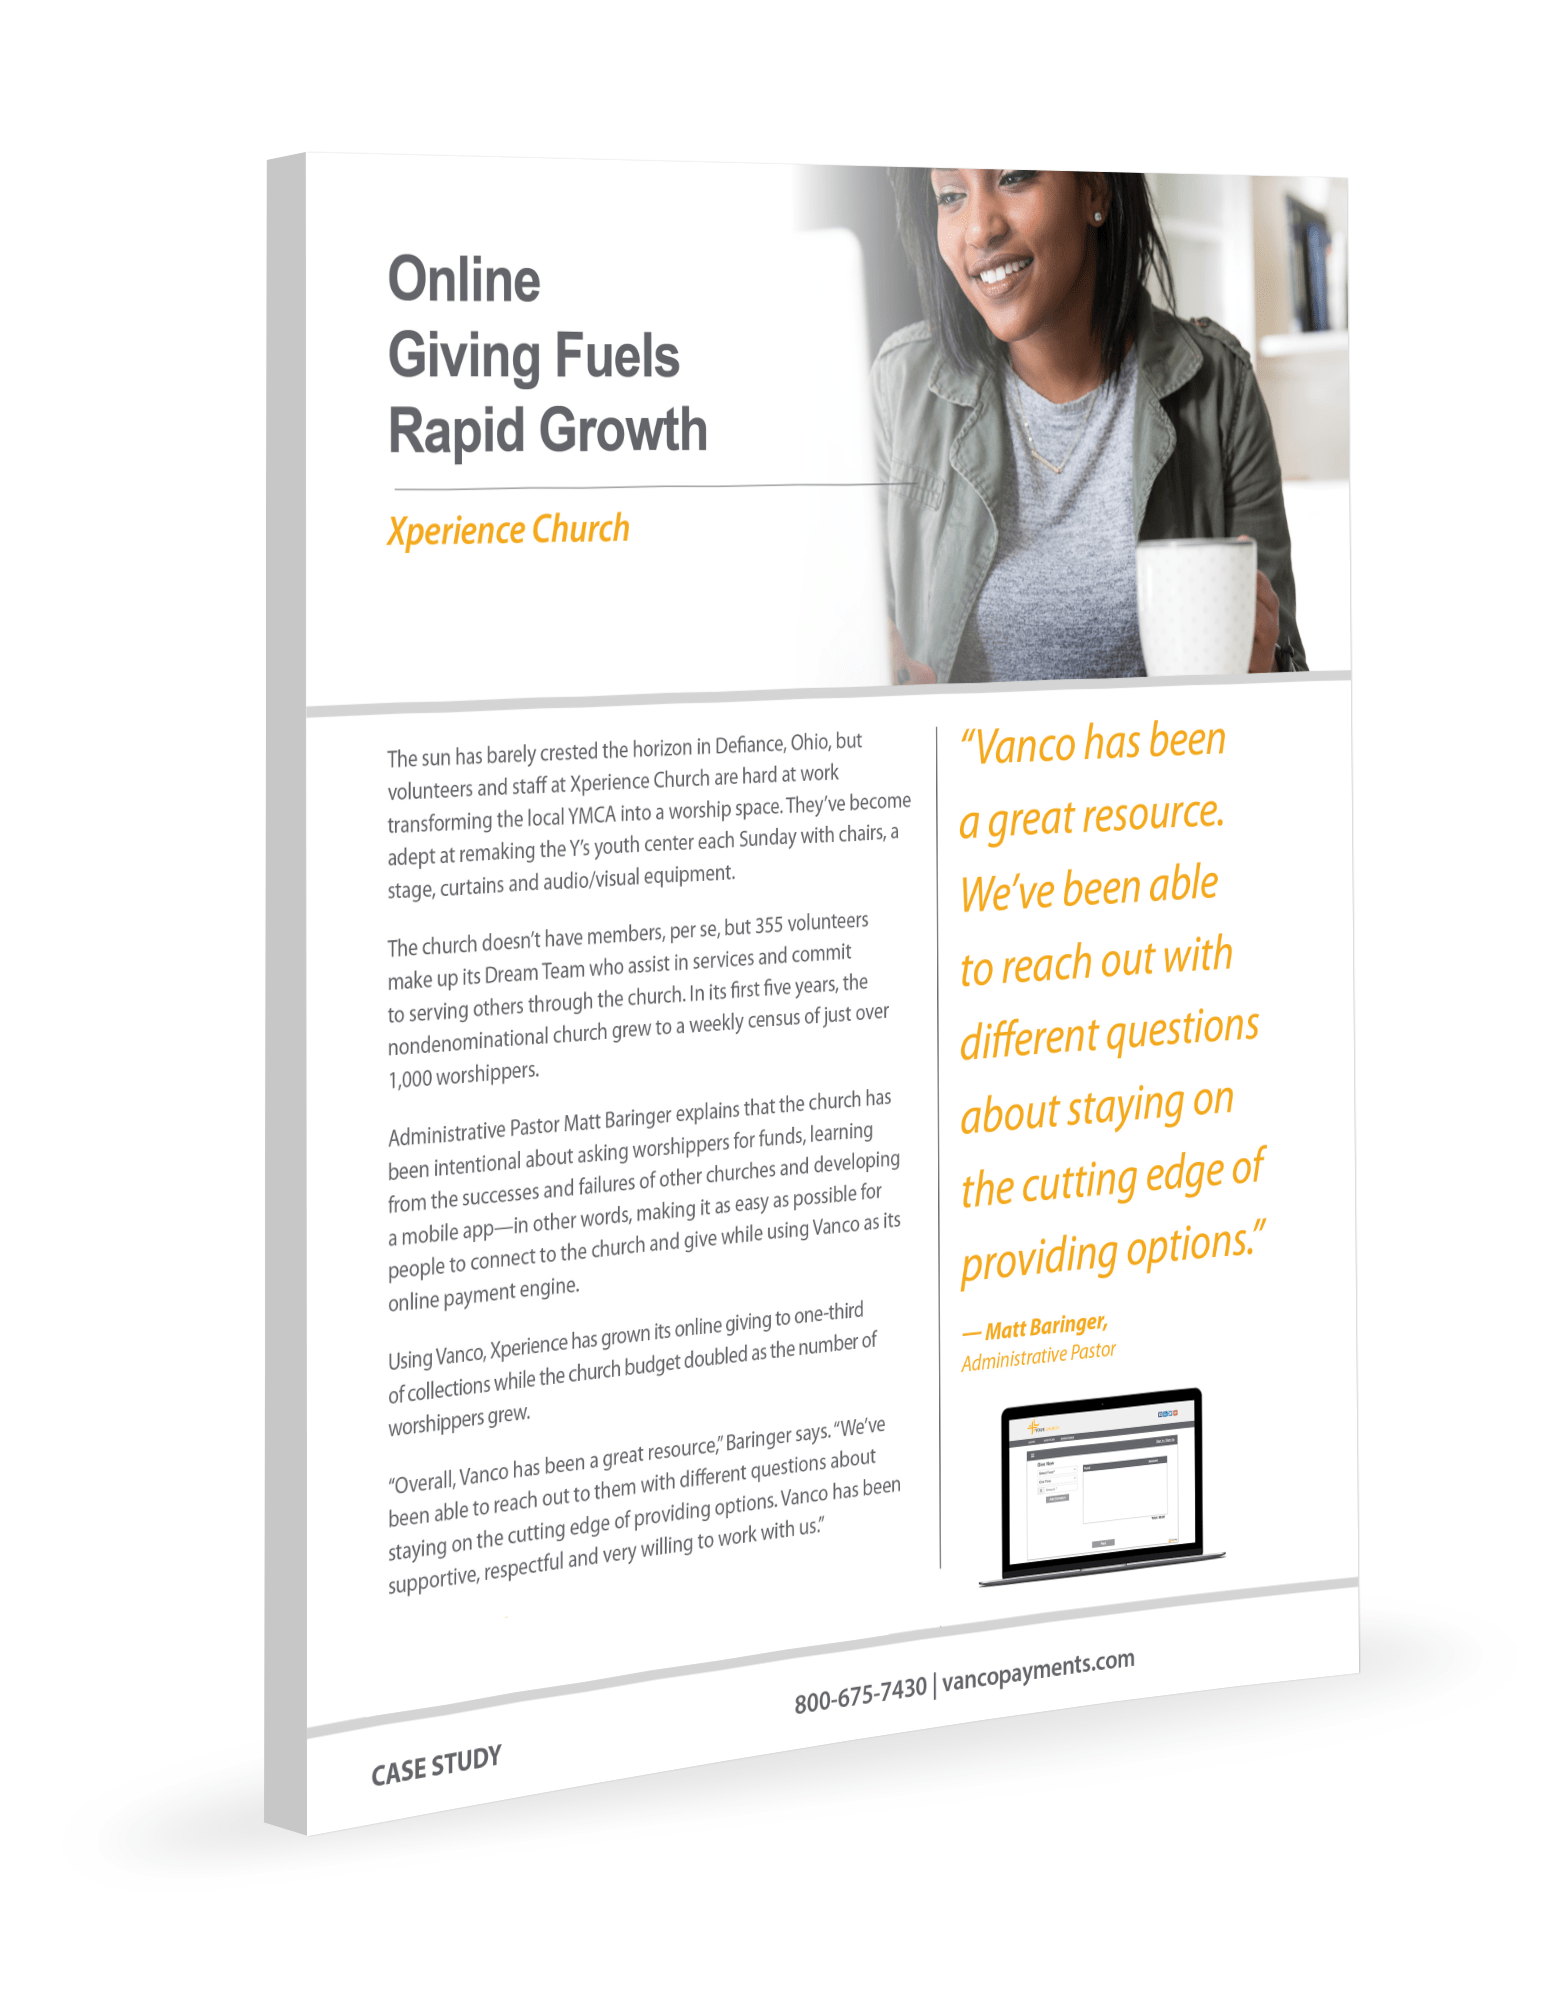 Case Study_Online Giving Fuels Rapid Growth